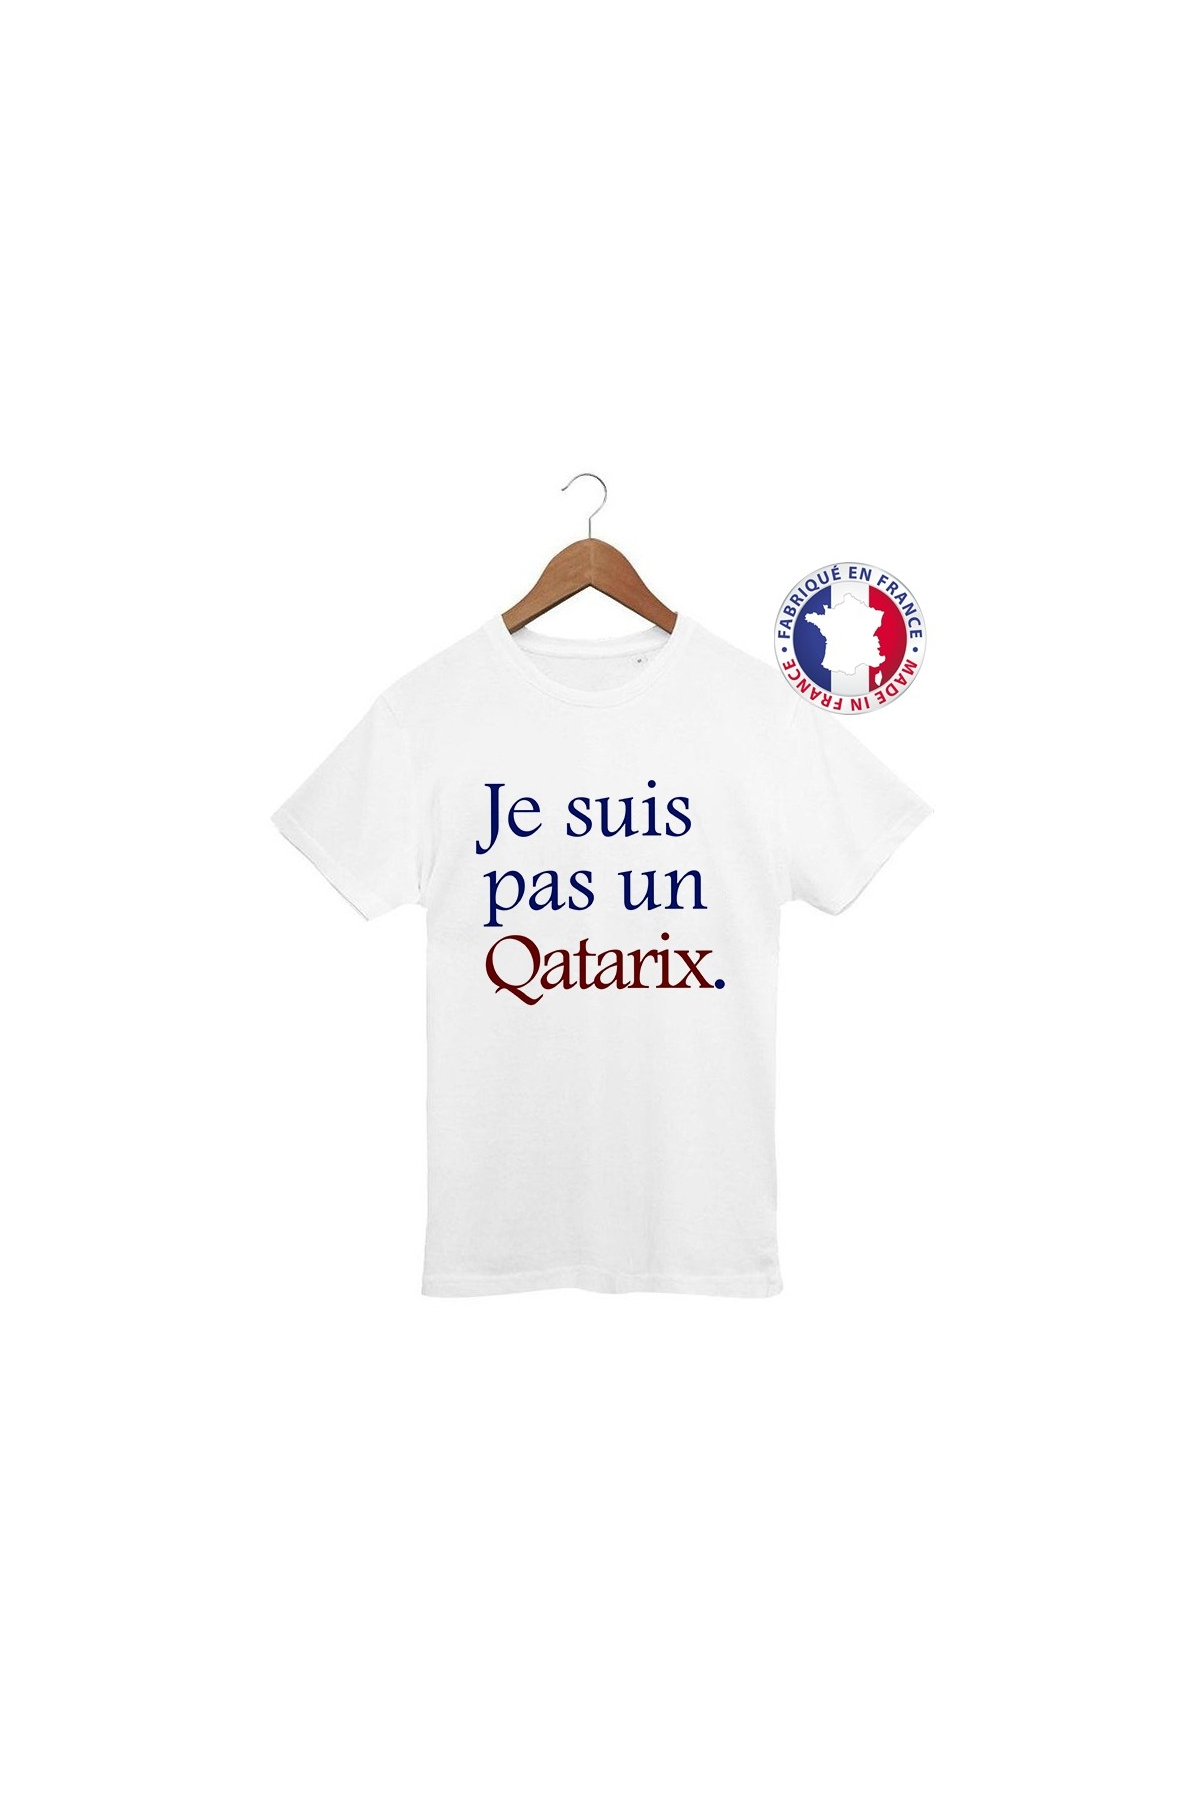 T-shirt Je suis pas un Qatarix - 100% Made in France